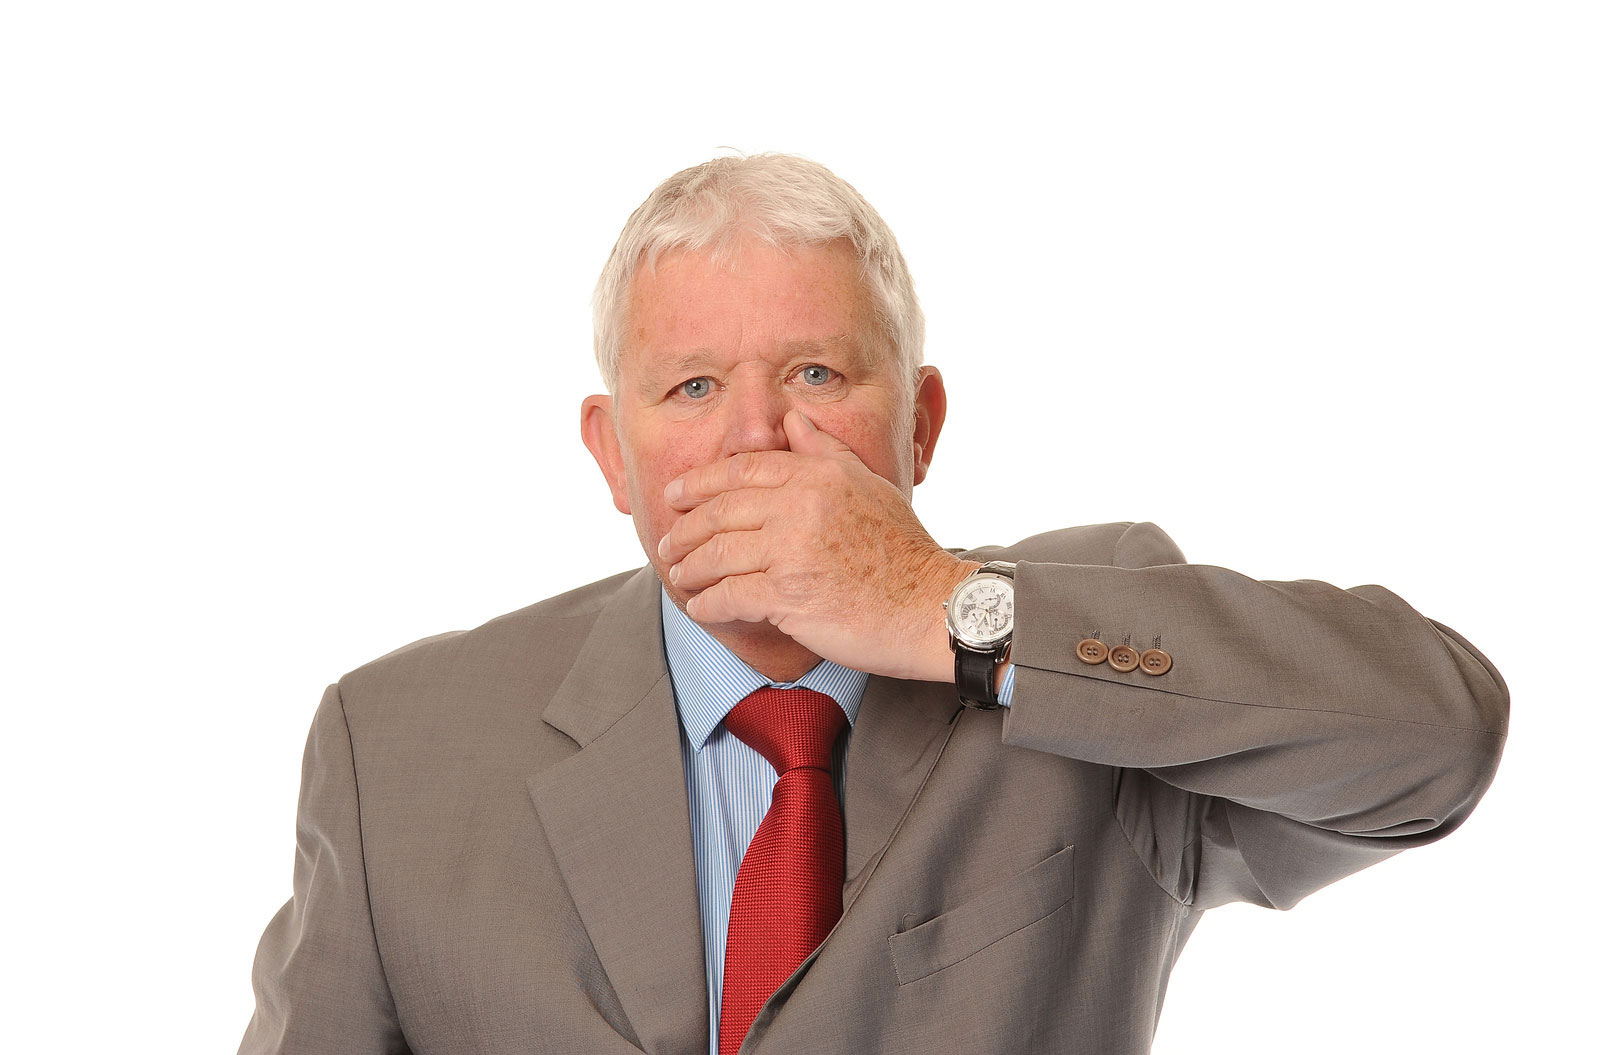 Business man covering mouth